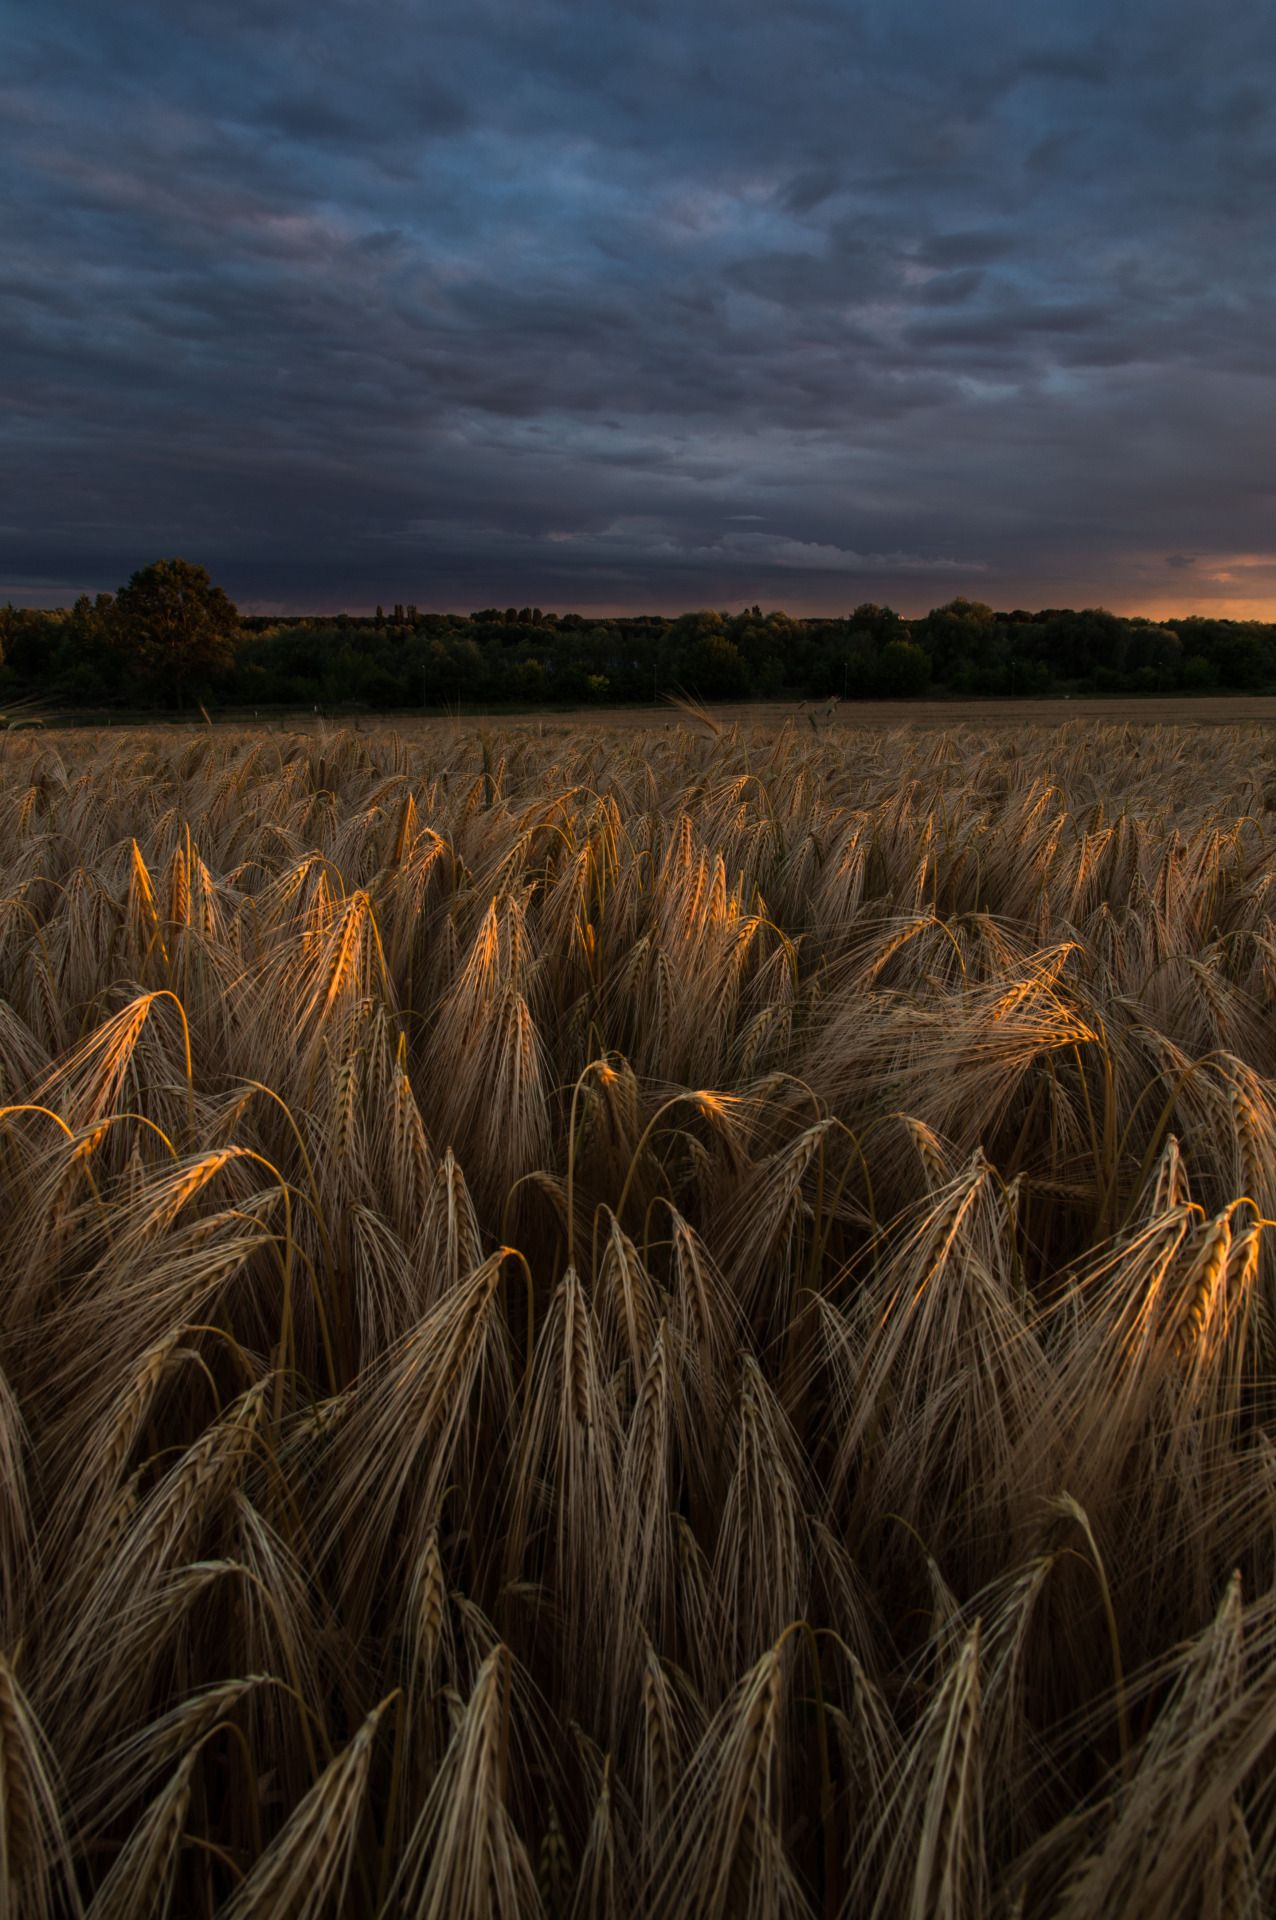 Last light by Denny Bitte - #cornfield #landscape #on #original #photographers #sunset #tumblr